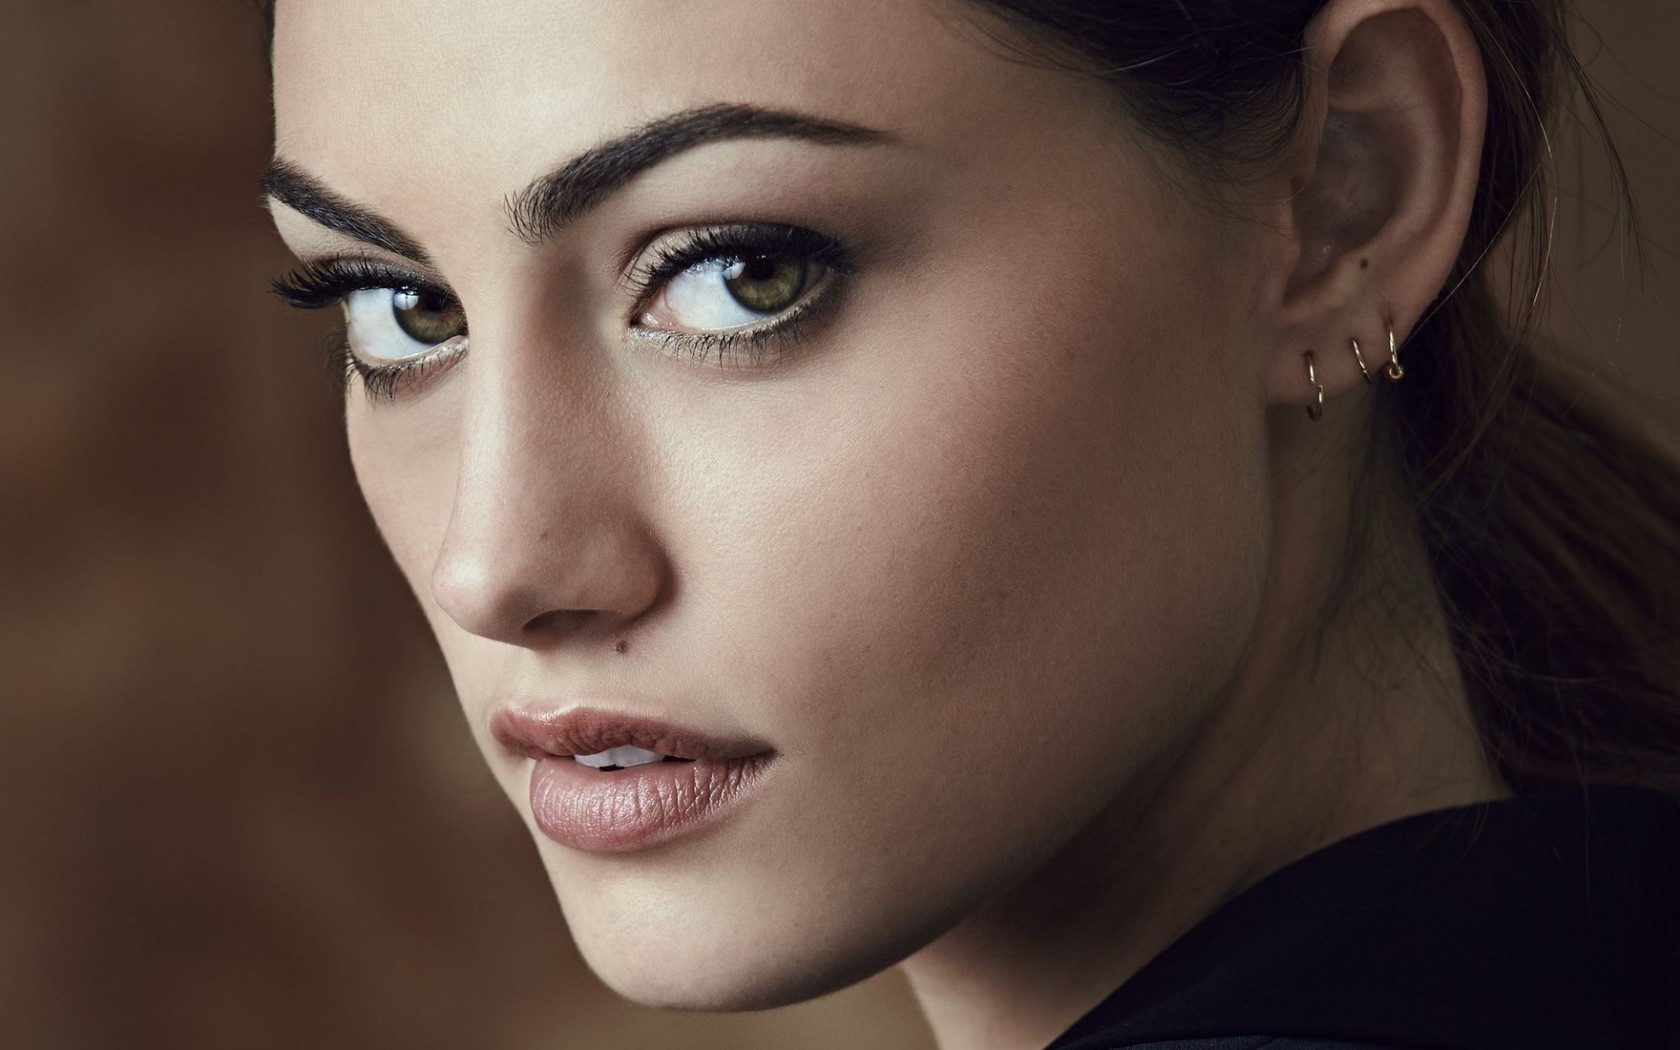 phoebe tonkin face hd wallpaper 66959